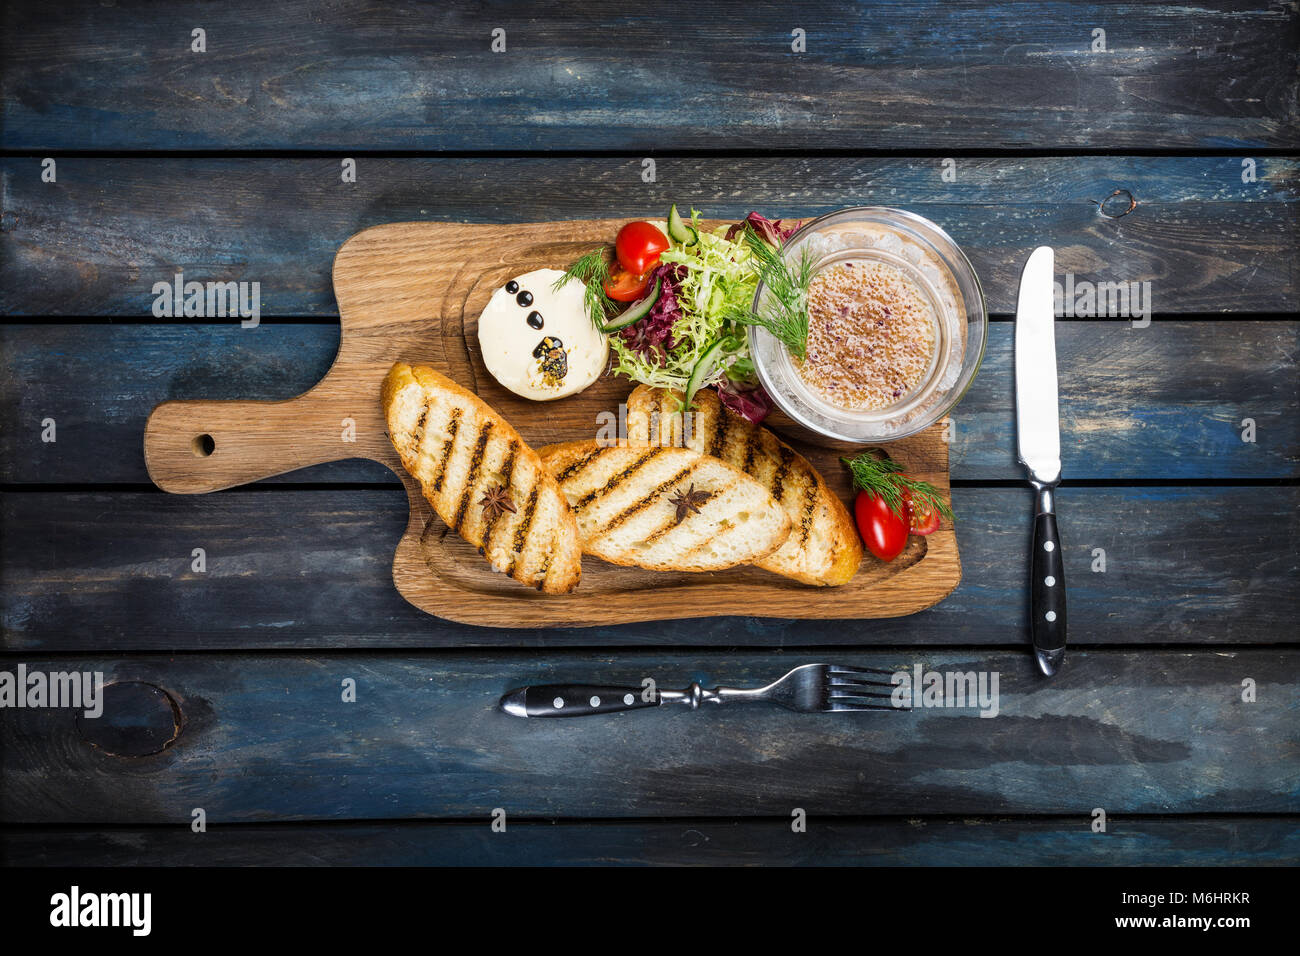 Toast with butter and caviar served with cutlery on a wooden background - Stock Image